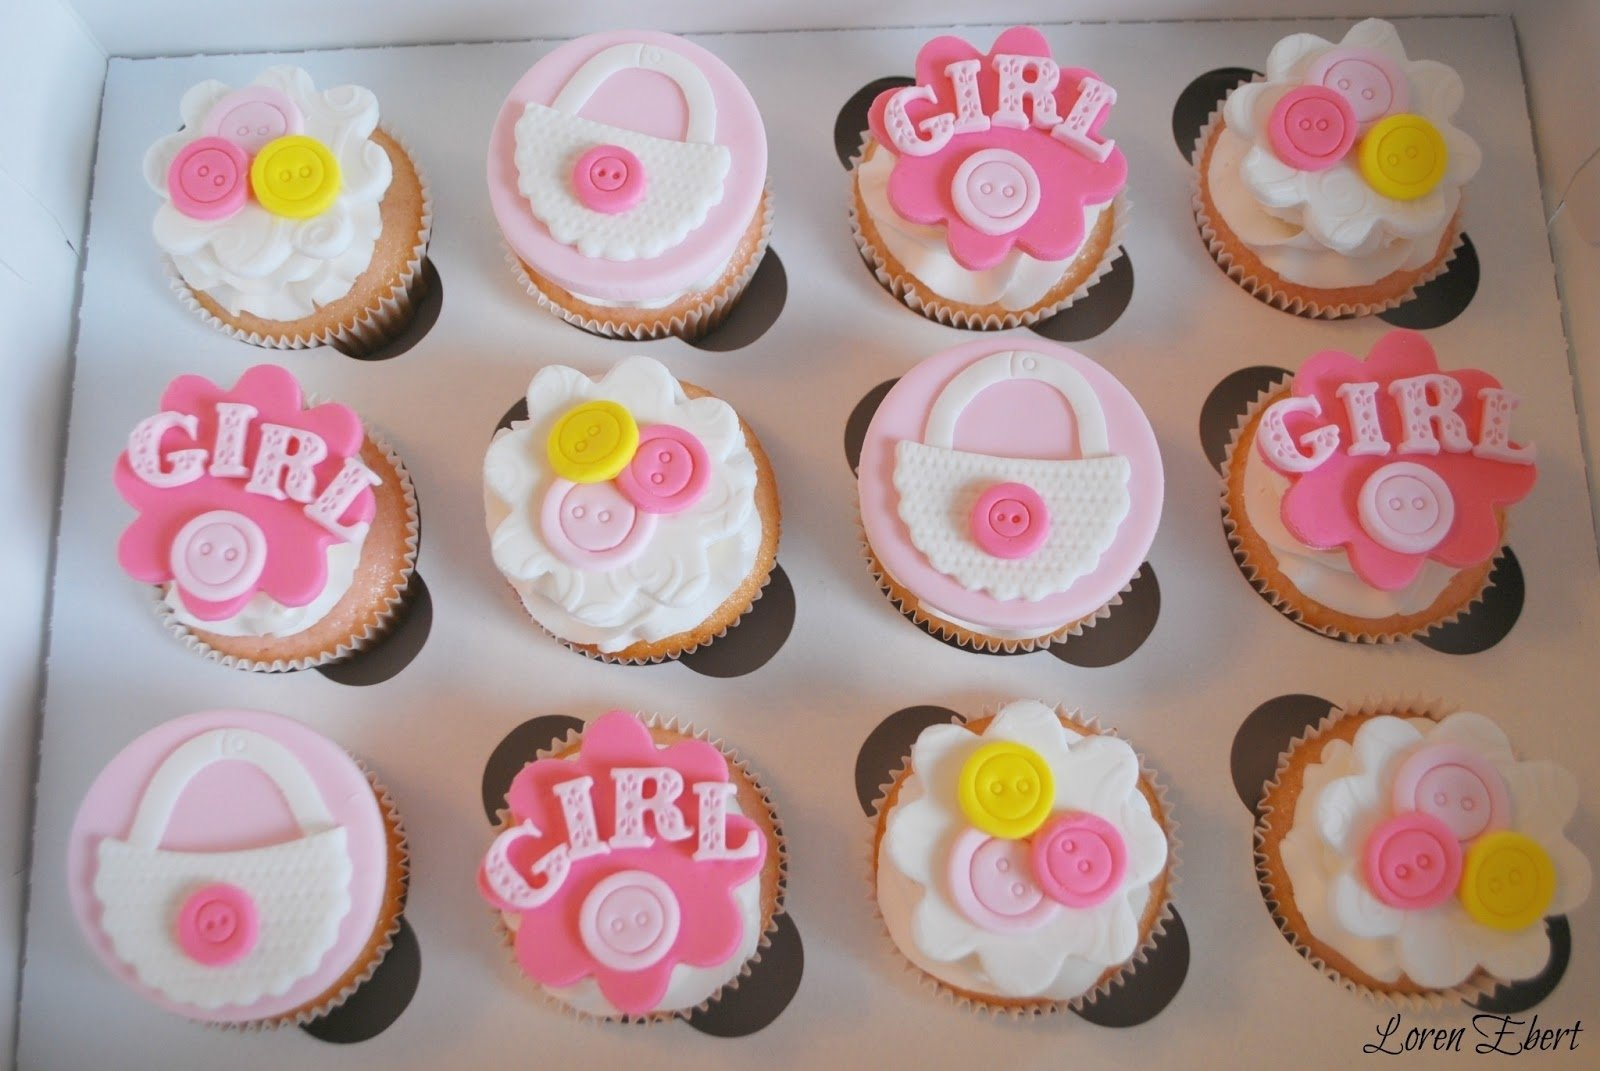 10 Lovely Cupcake Ideas For Baby Shower pink baby shower cupcakes google search cupcakes pinterest 1 2021